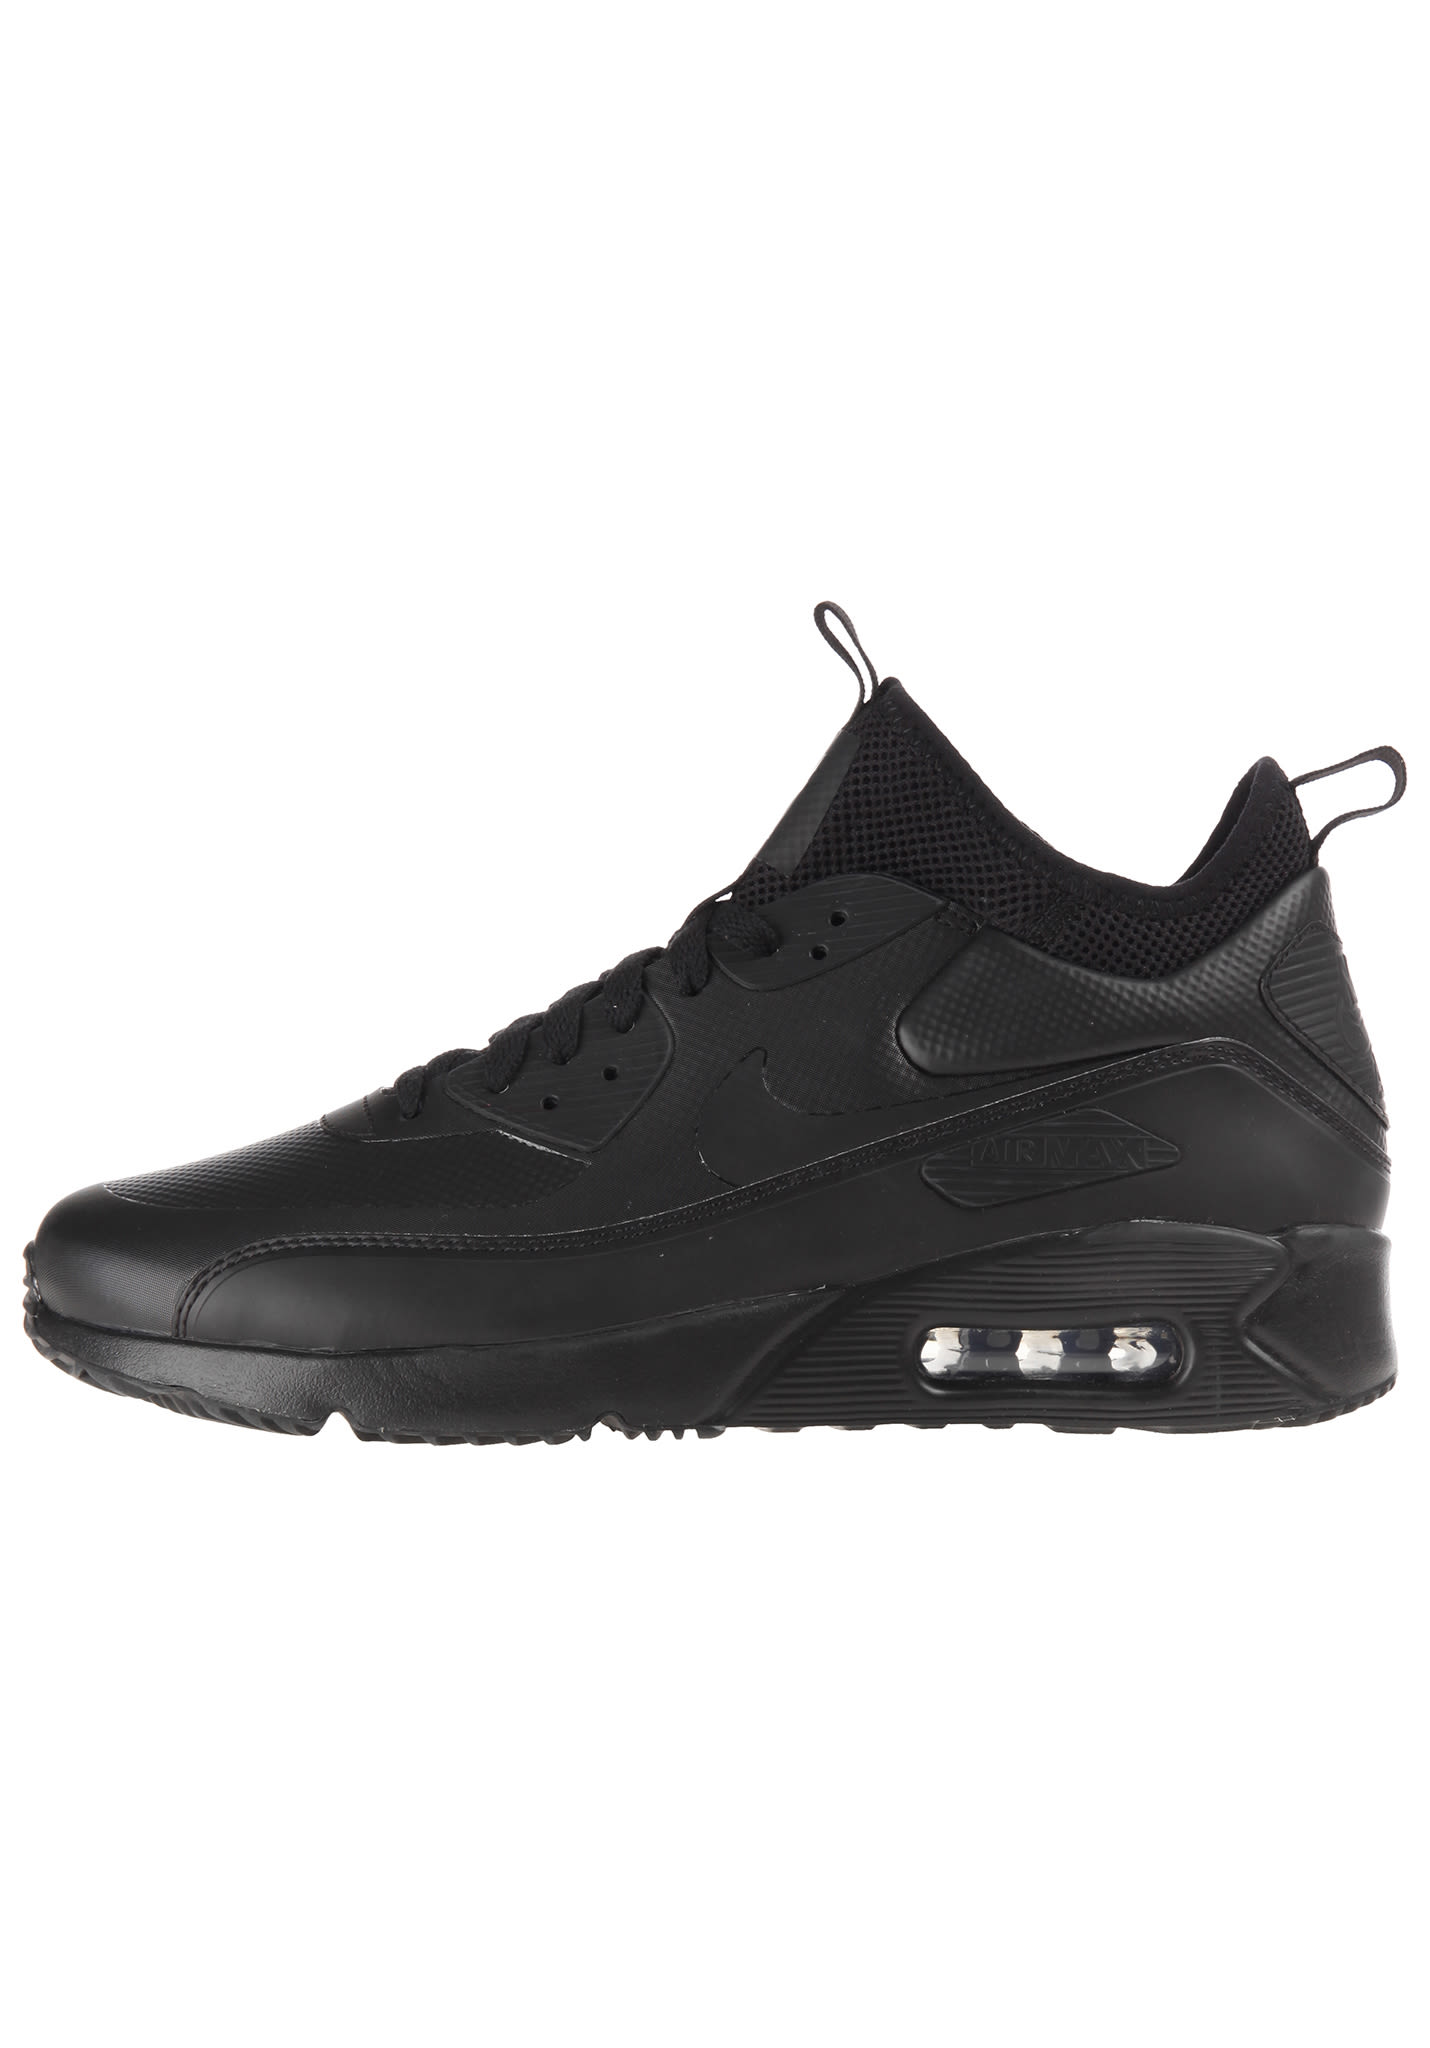 208bec6c41 NIKE SPORTSWEAR Air Max 90 Ultra Mid Winter - Sneakers for Men - Black -  Planet Sports